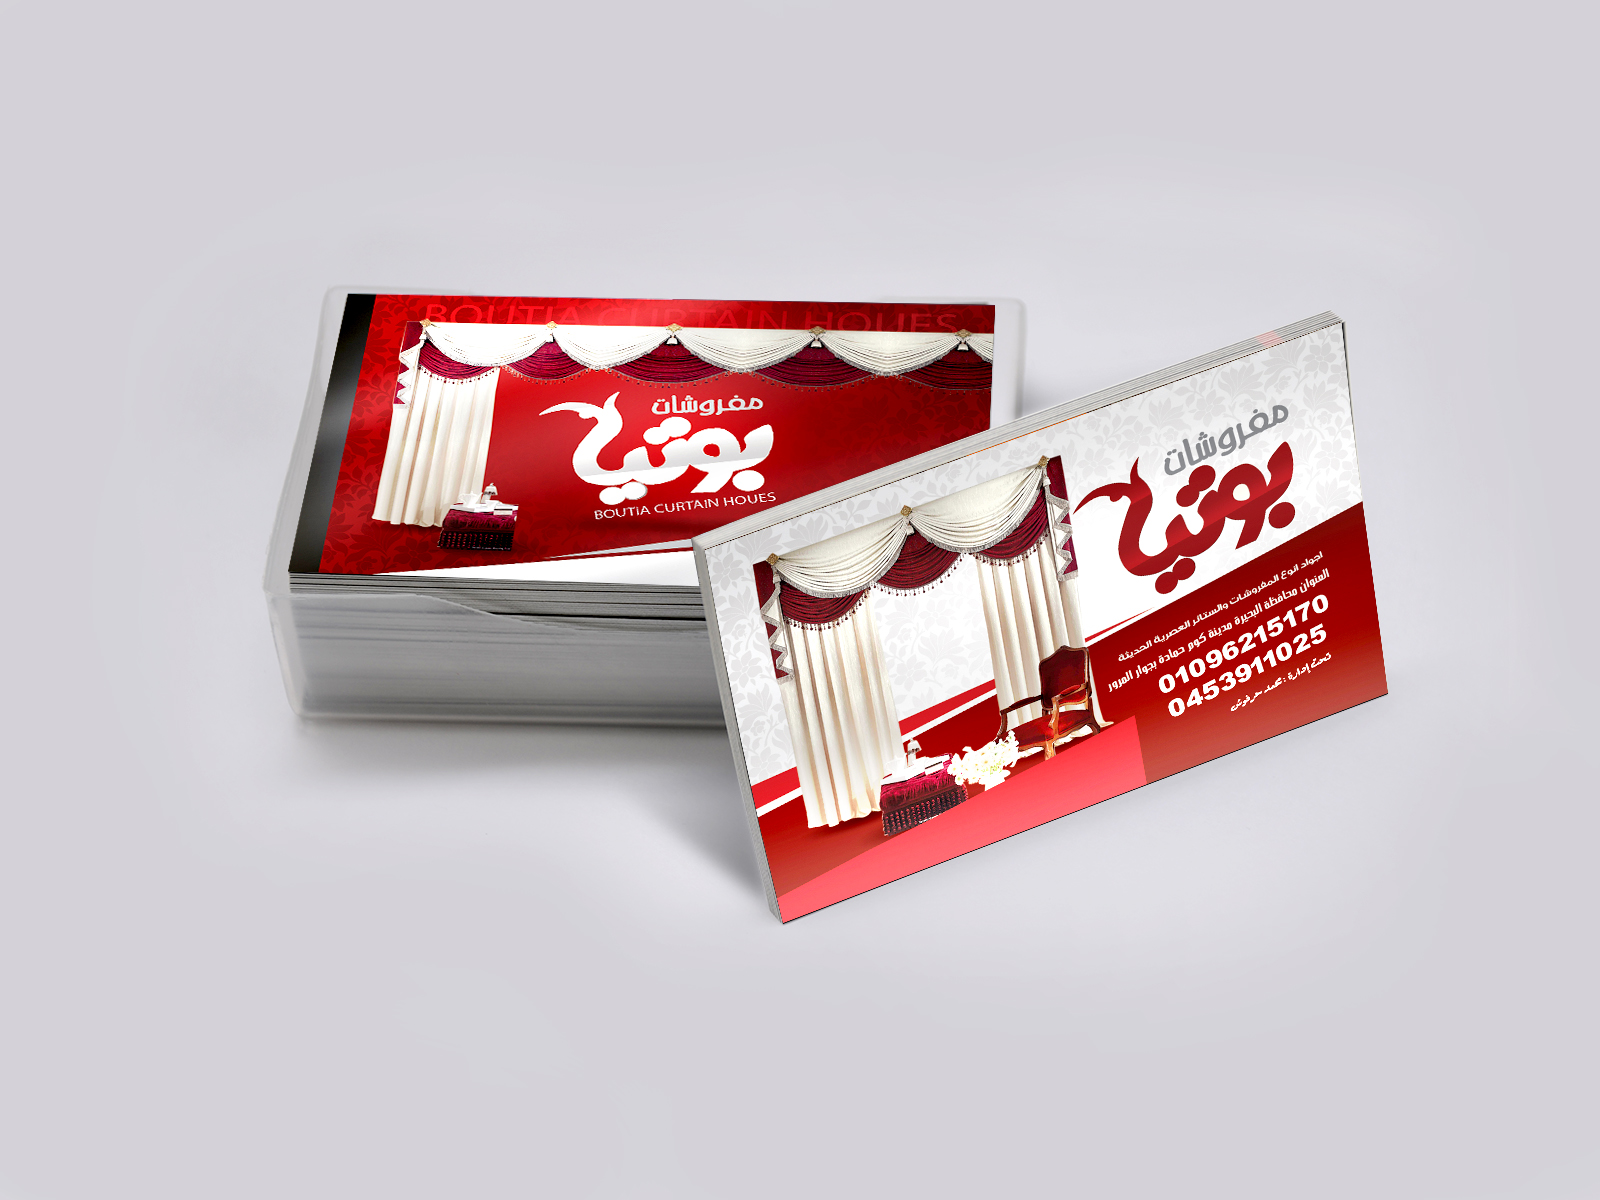 Download a personal card psd for curtains and furnishings stores, a business card psd